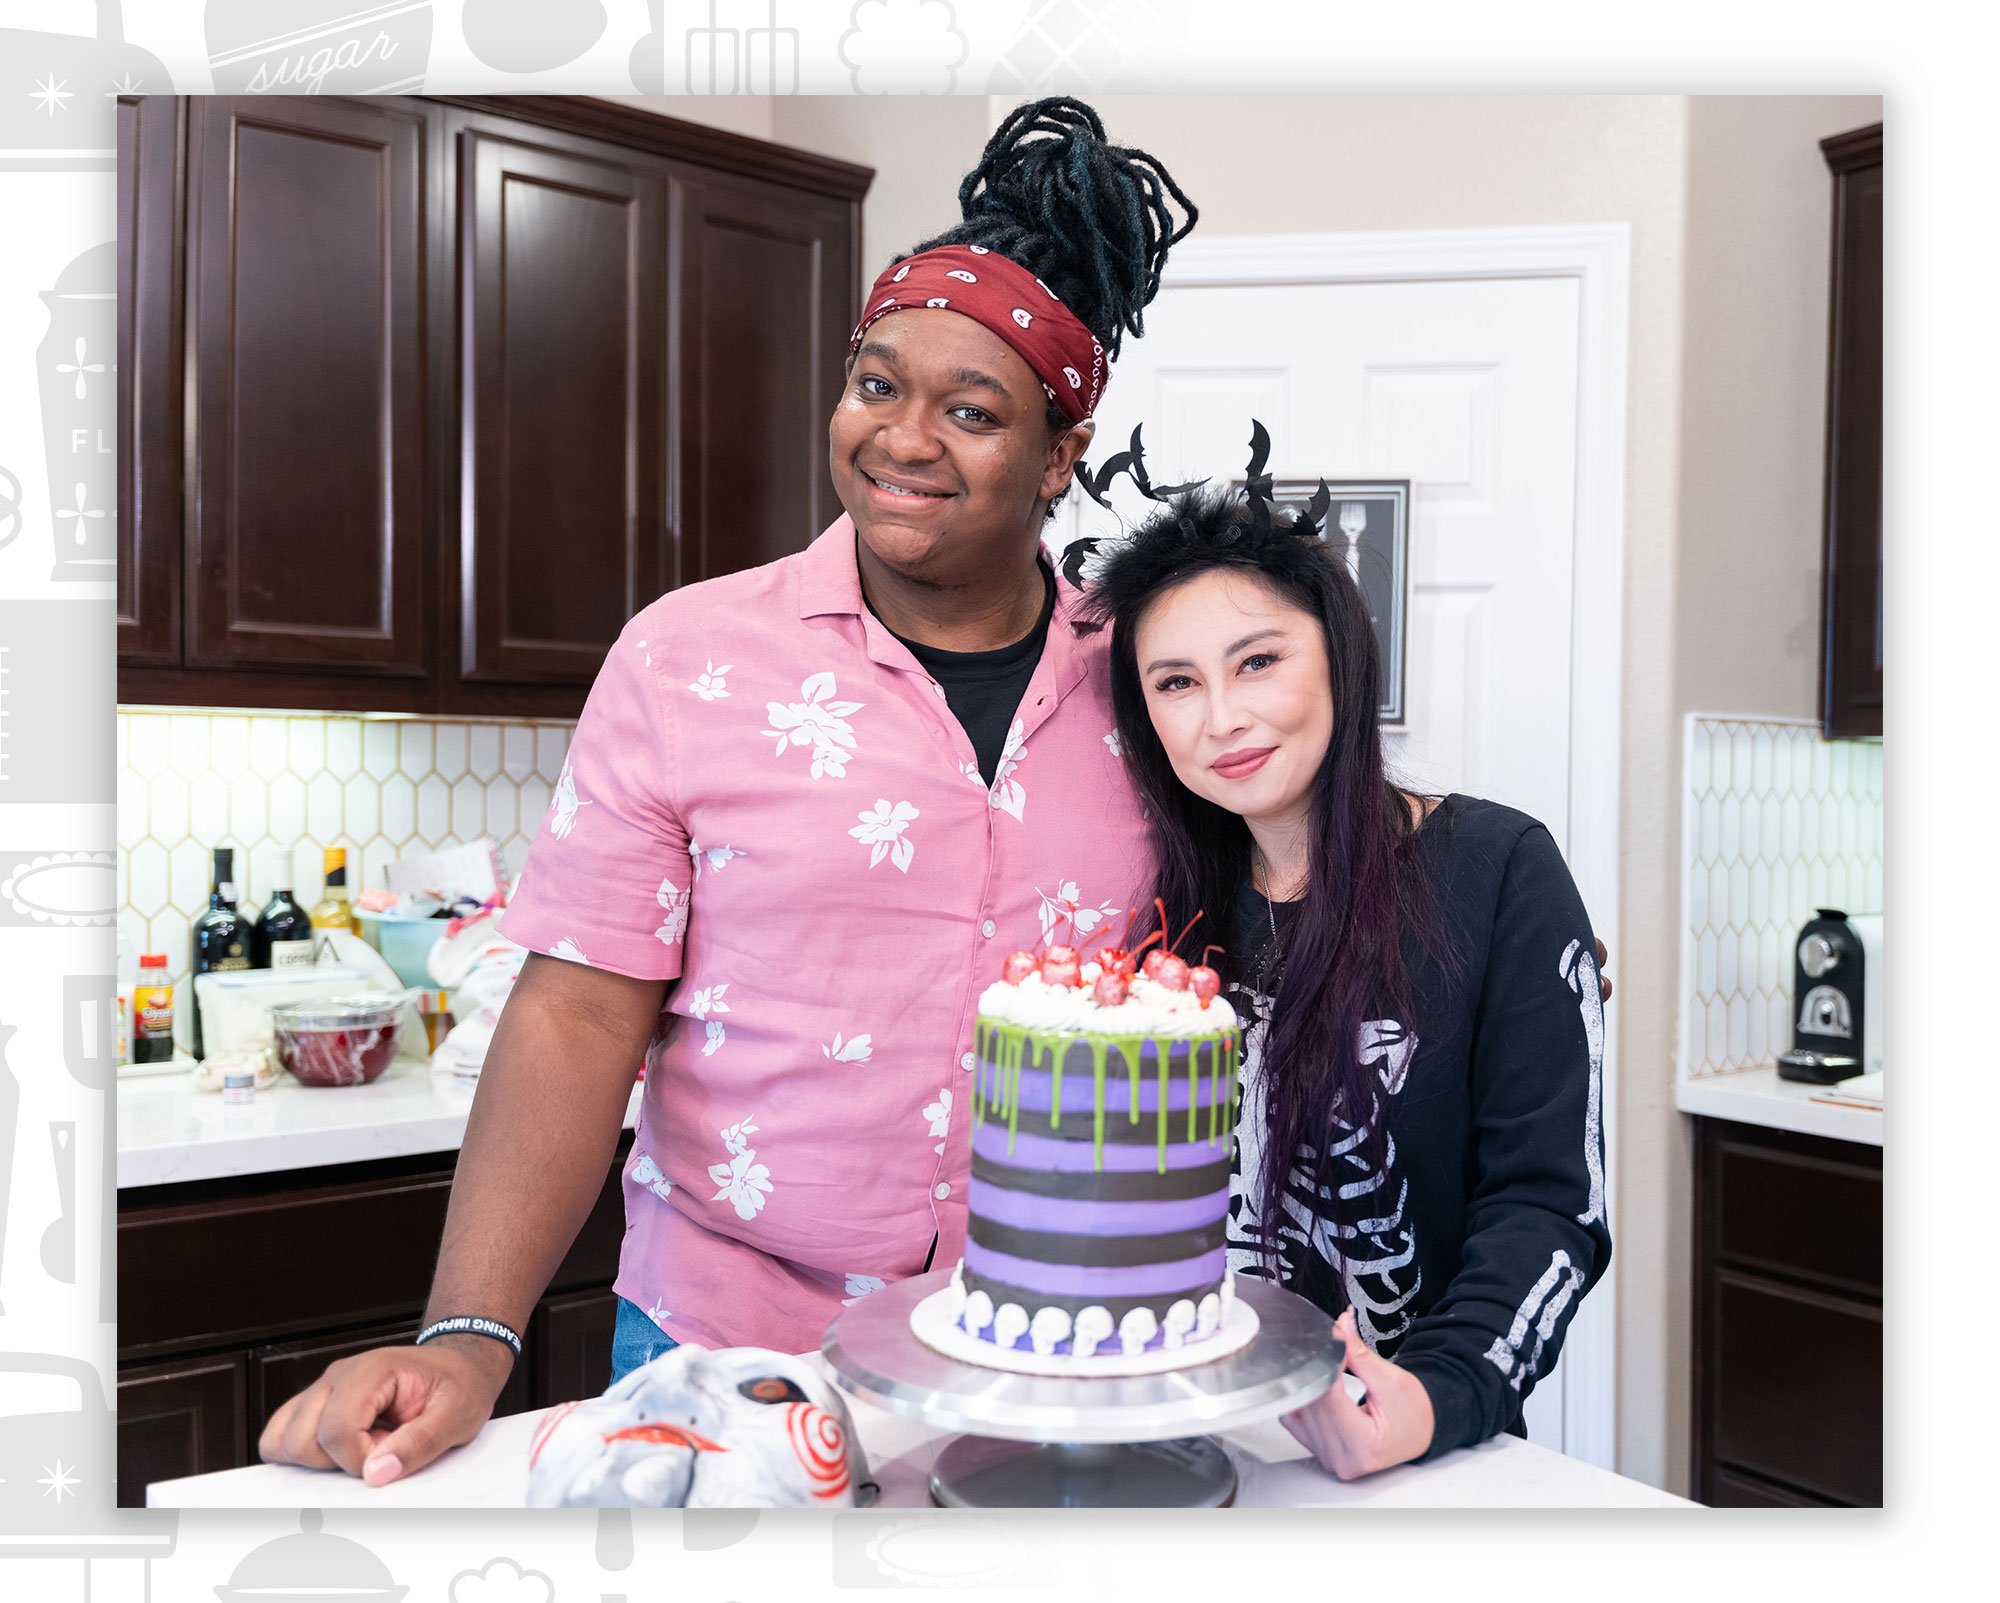 Malek and Lisa posing with a cake for Baking with Borderlands